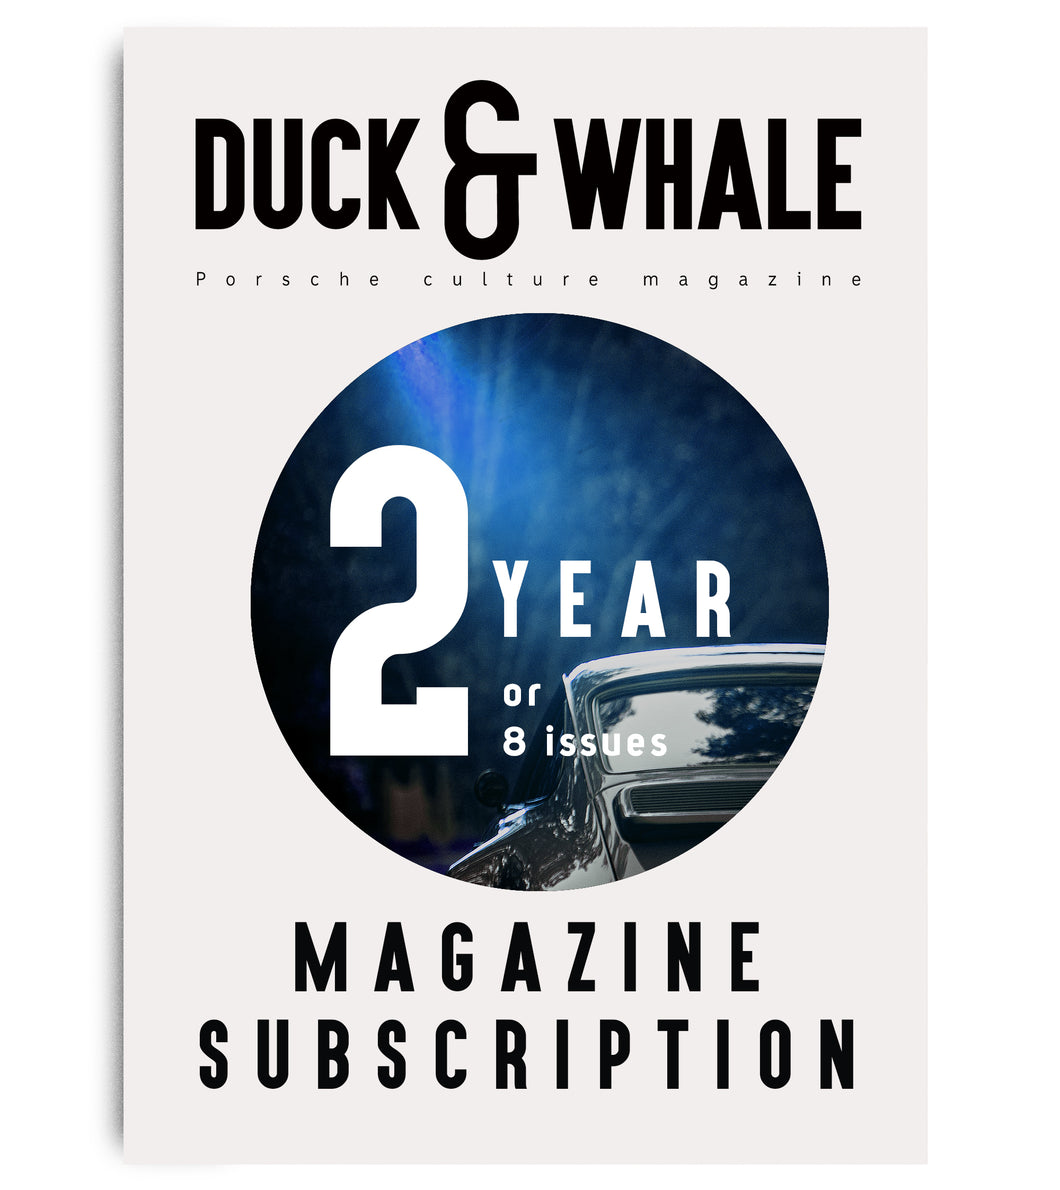 2 Year (8 issues) Duck & Whale Magazine Subscription